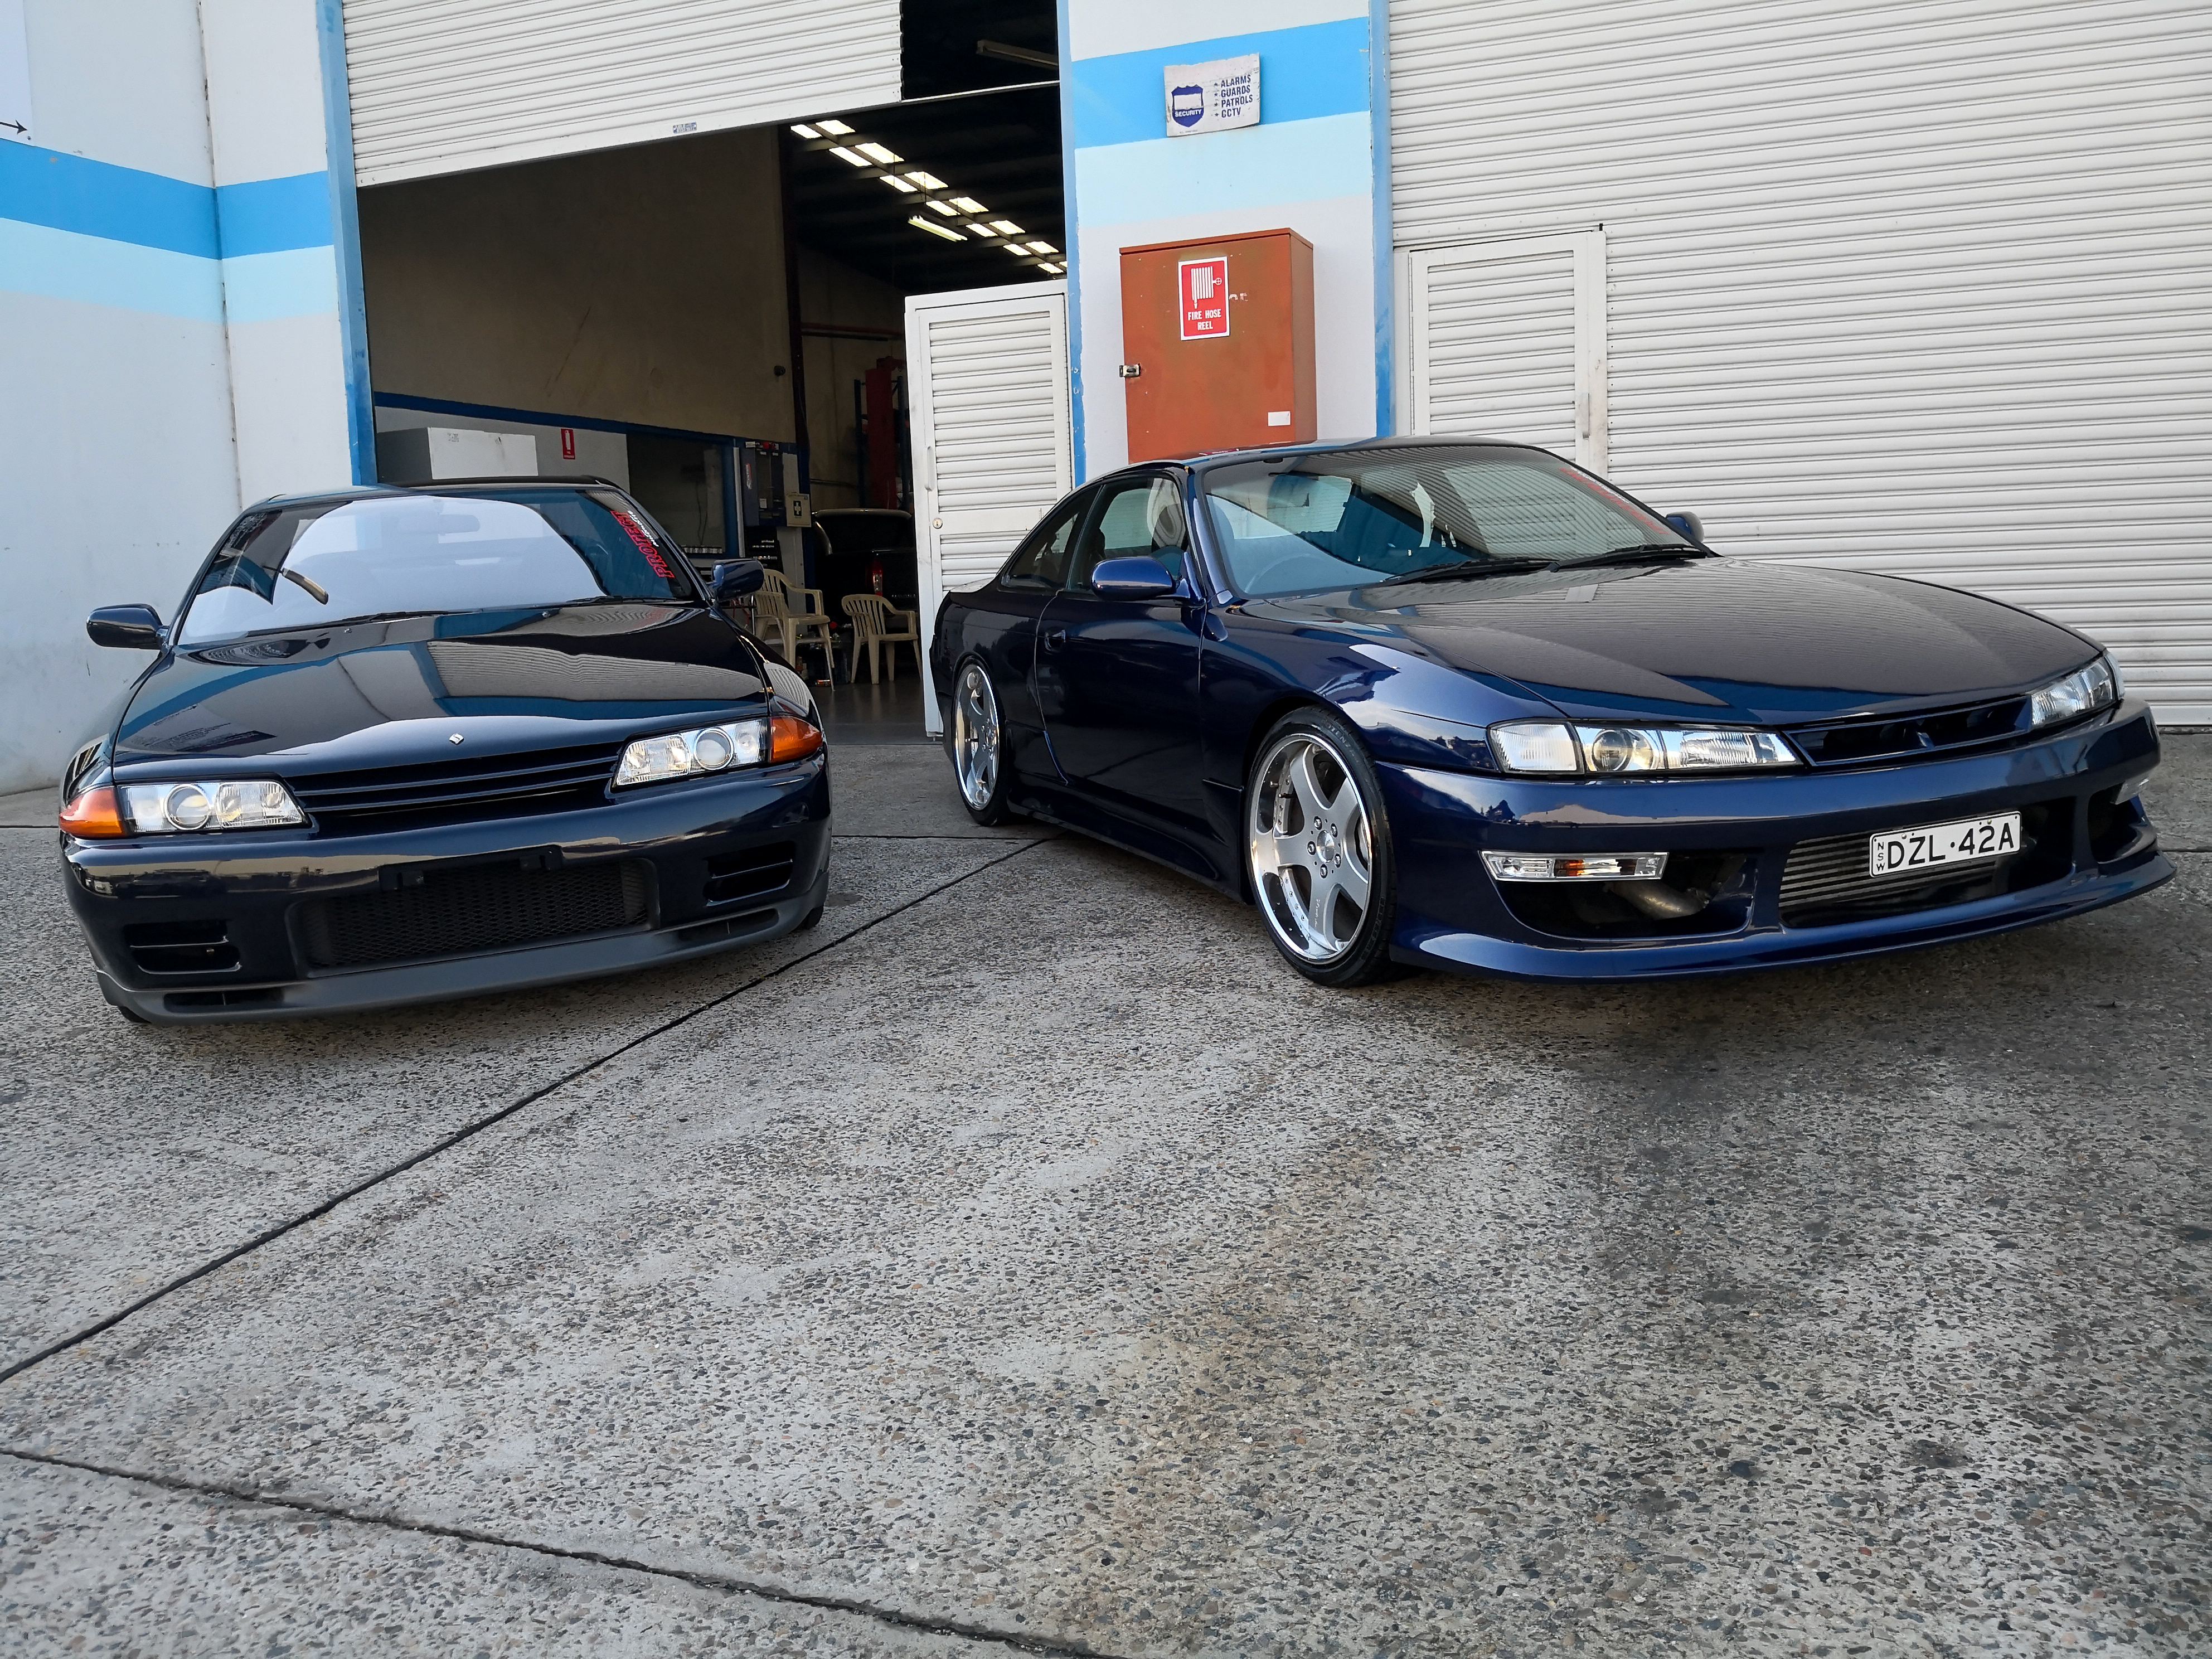 S14 and GTr-386